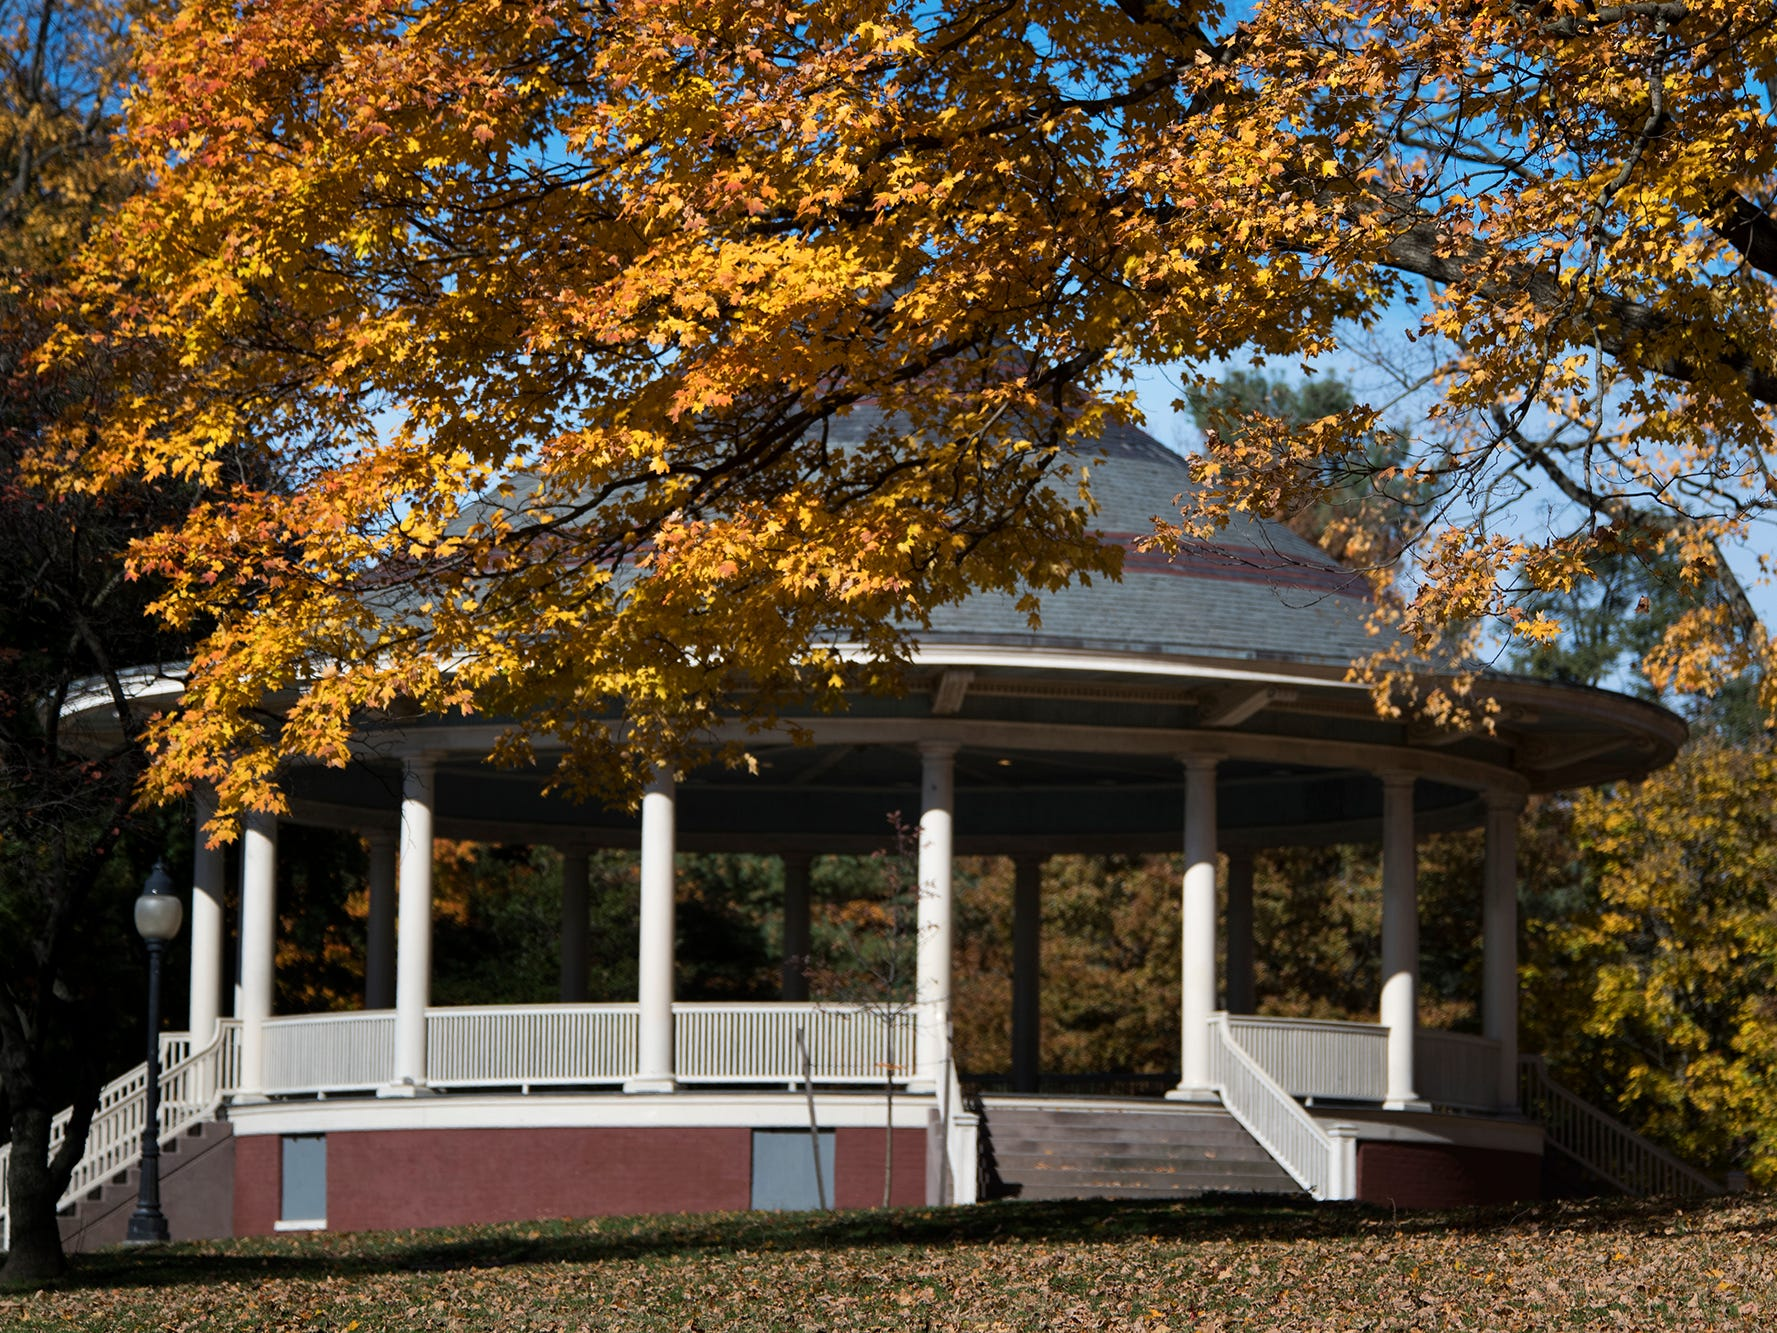 The Farquhar Park bandstand framed with Autumn leaves Sunday November 4, 2018.